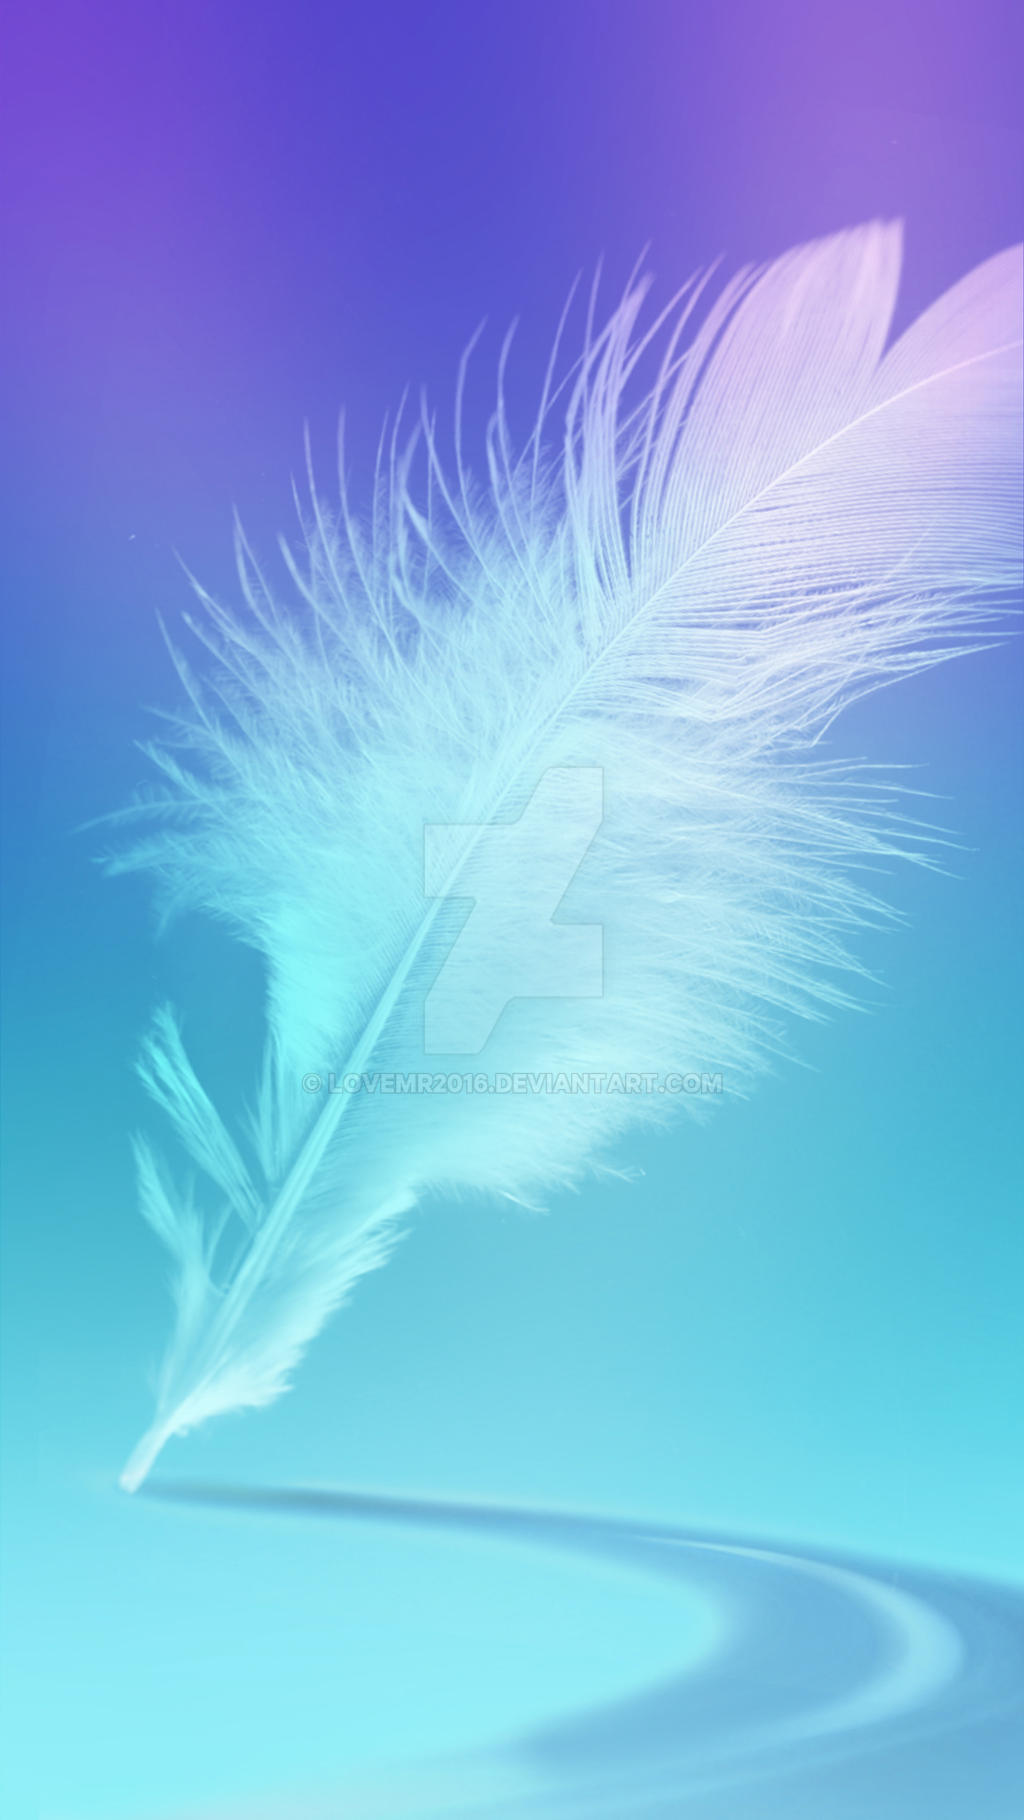 Feather Wallpapers Sony XperiaxPerformance by lovemr2016 on DeviantArt